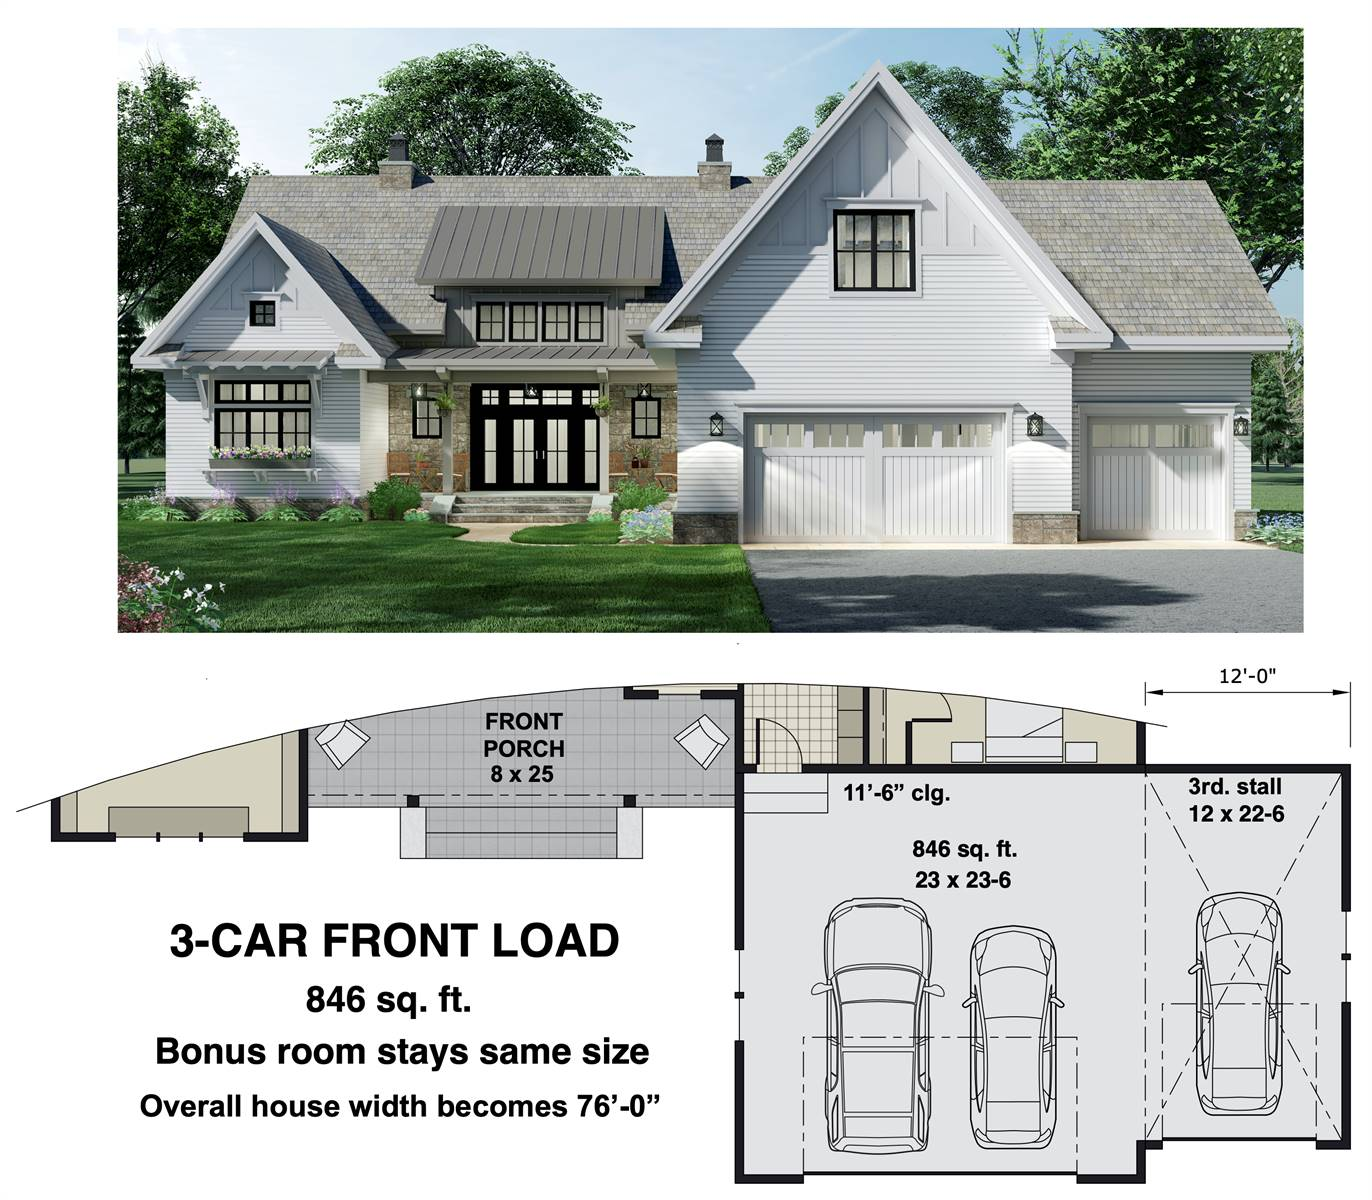 3-Car Front Entry Option image of Charming 3-Bedroom Farm House Style House Plan 8775